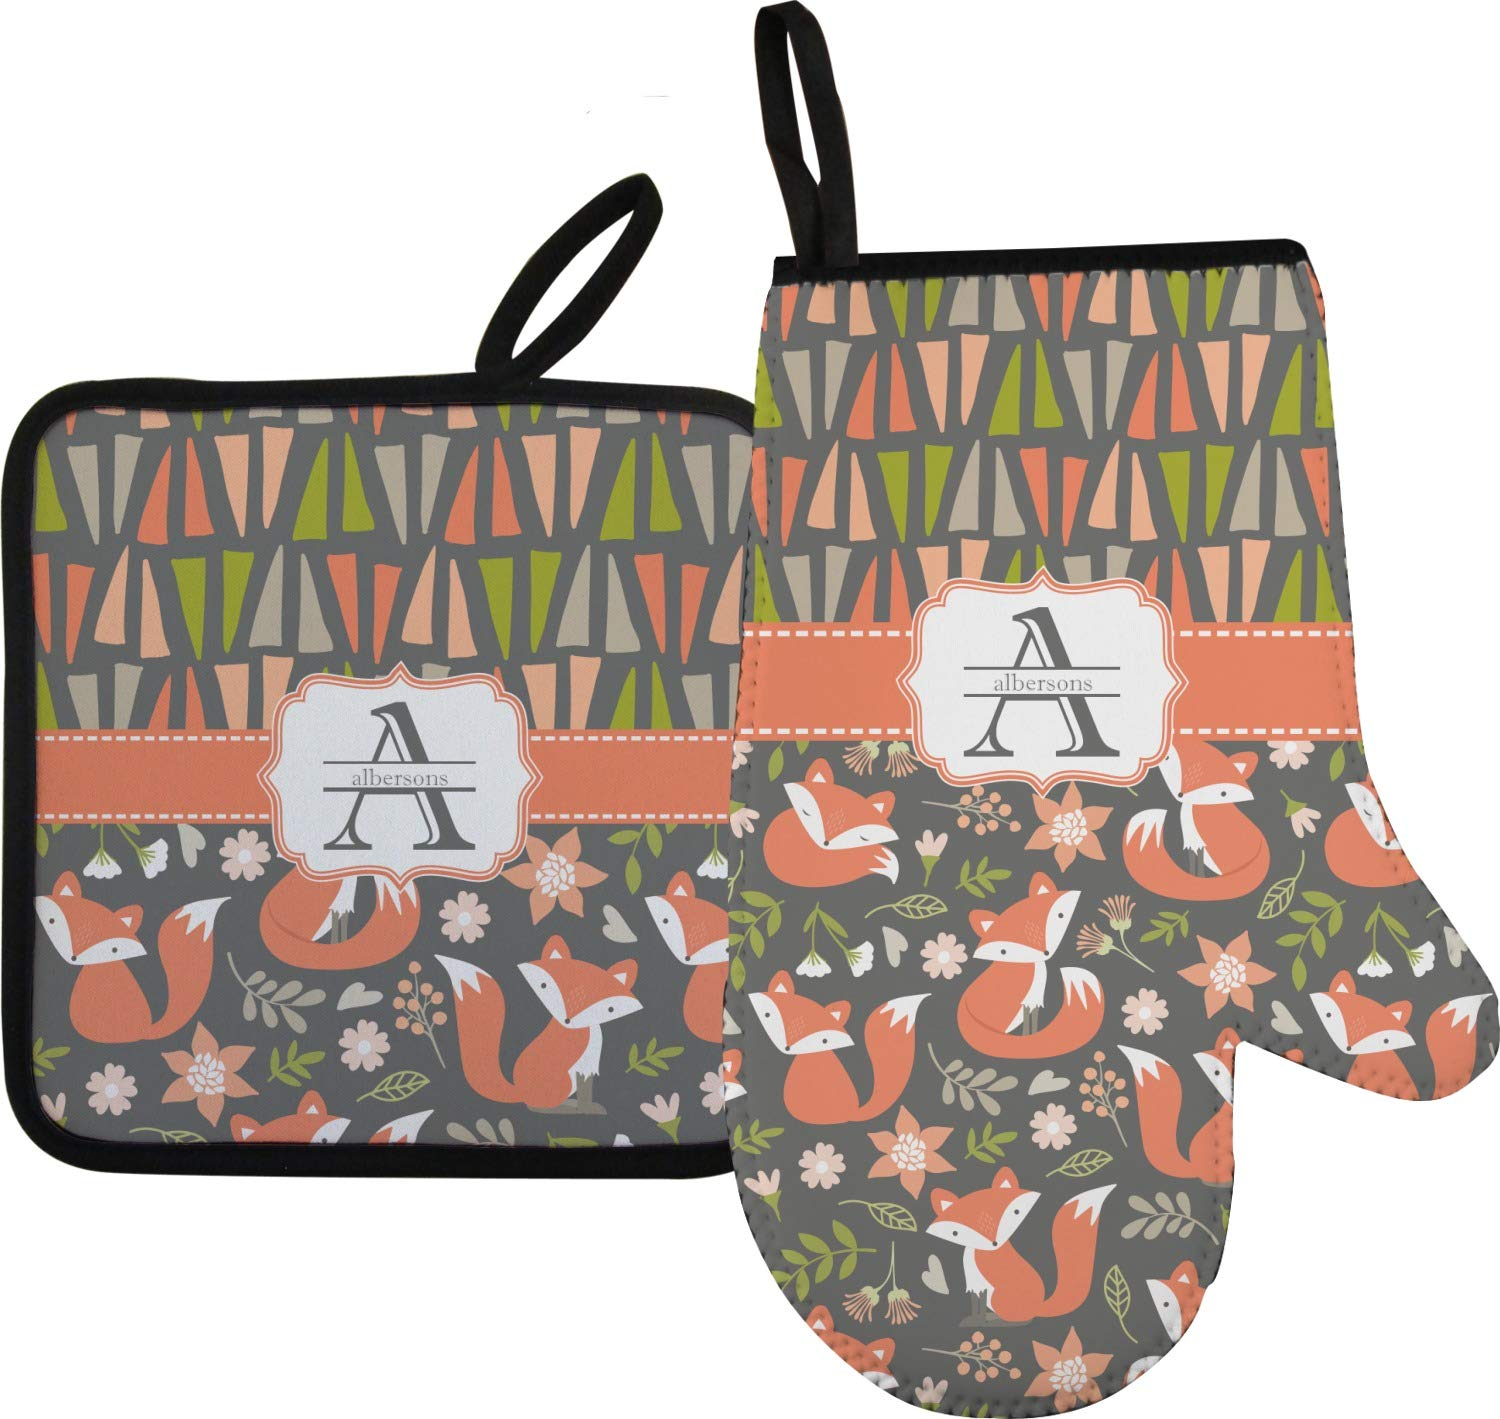 RNK Shops Fox Trail Floral Oven Mitt & Pot Holder (Personalized)